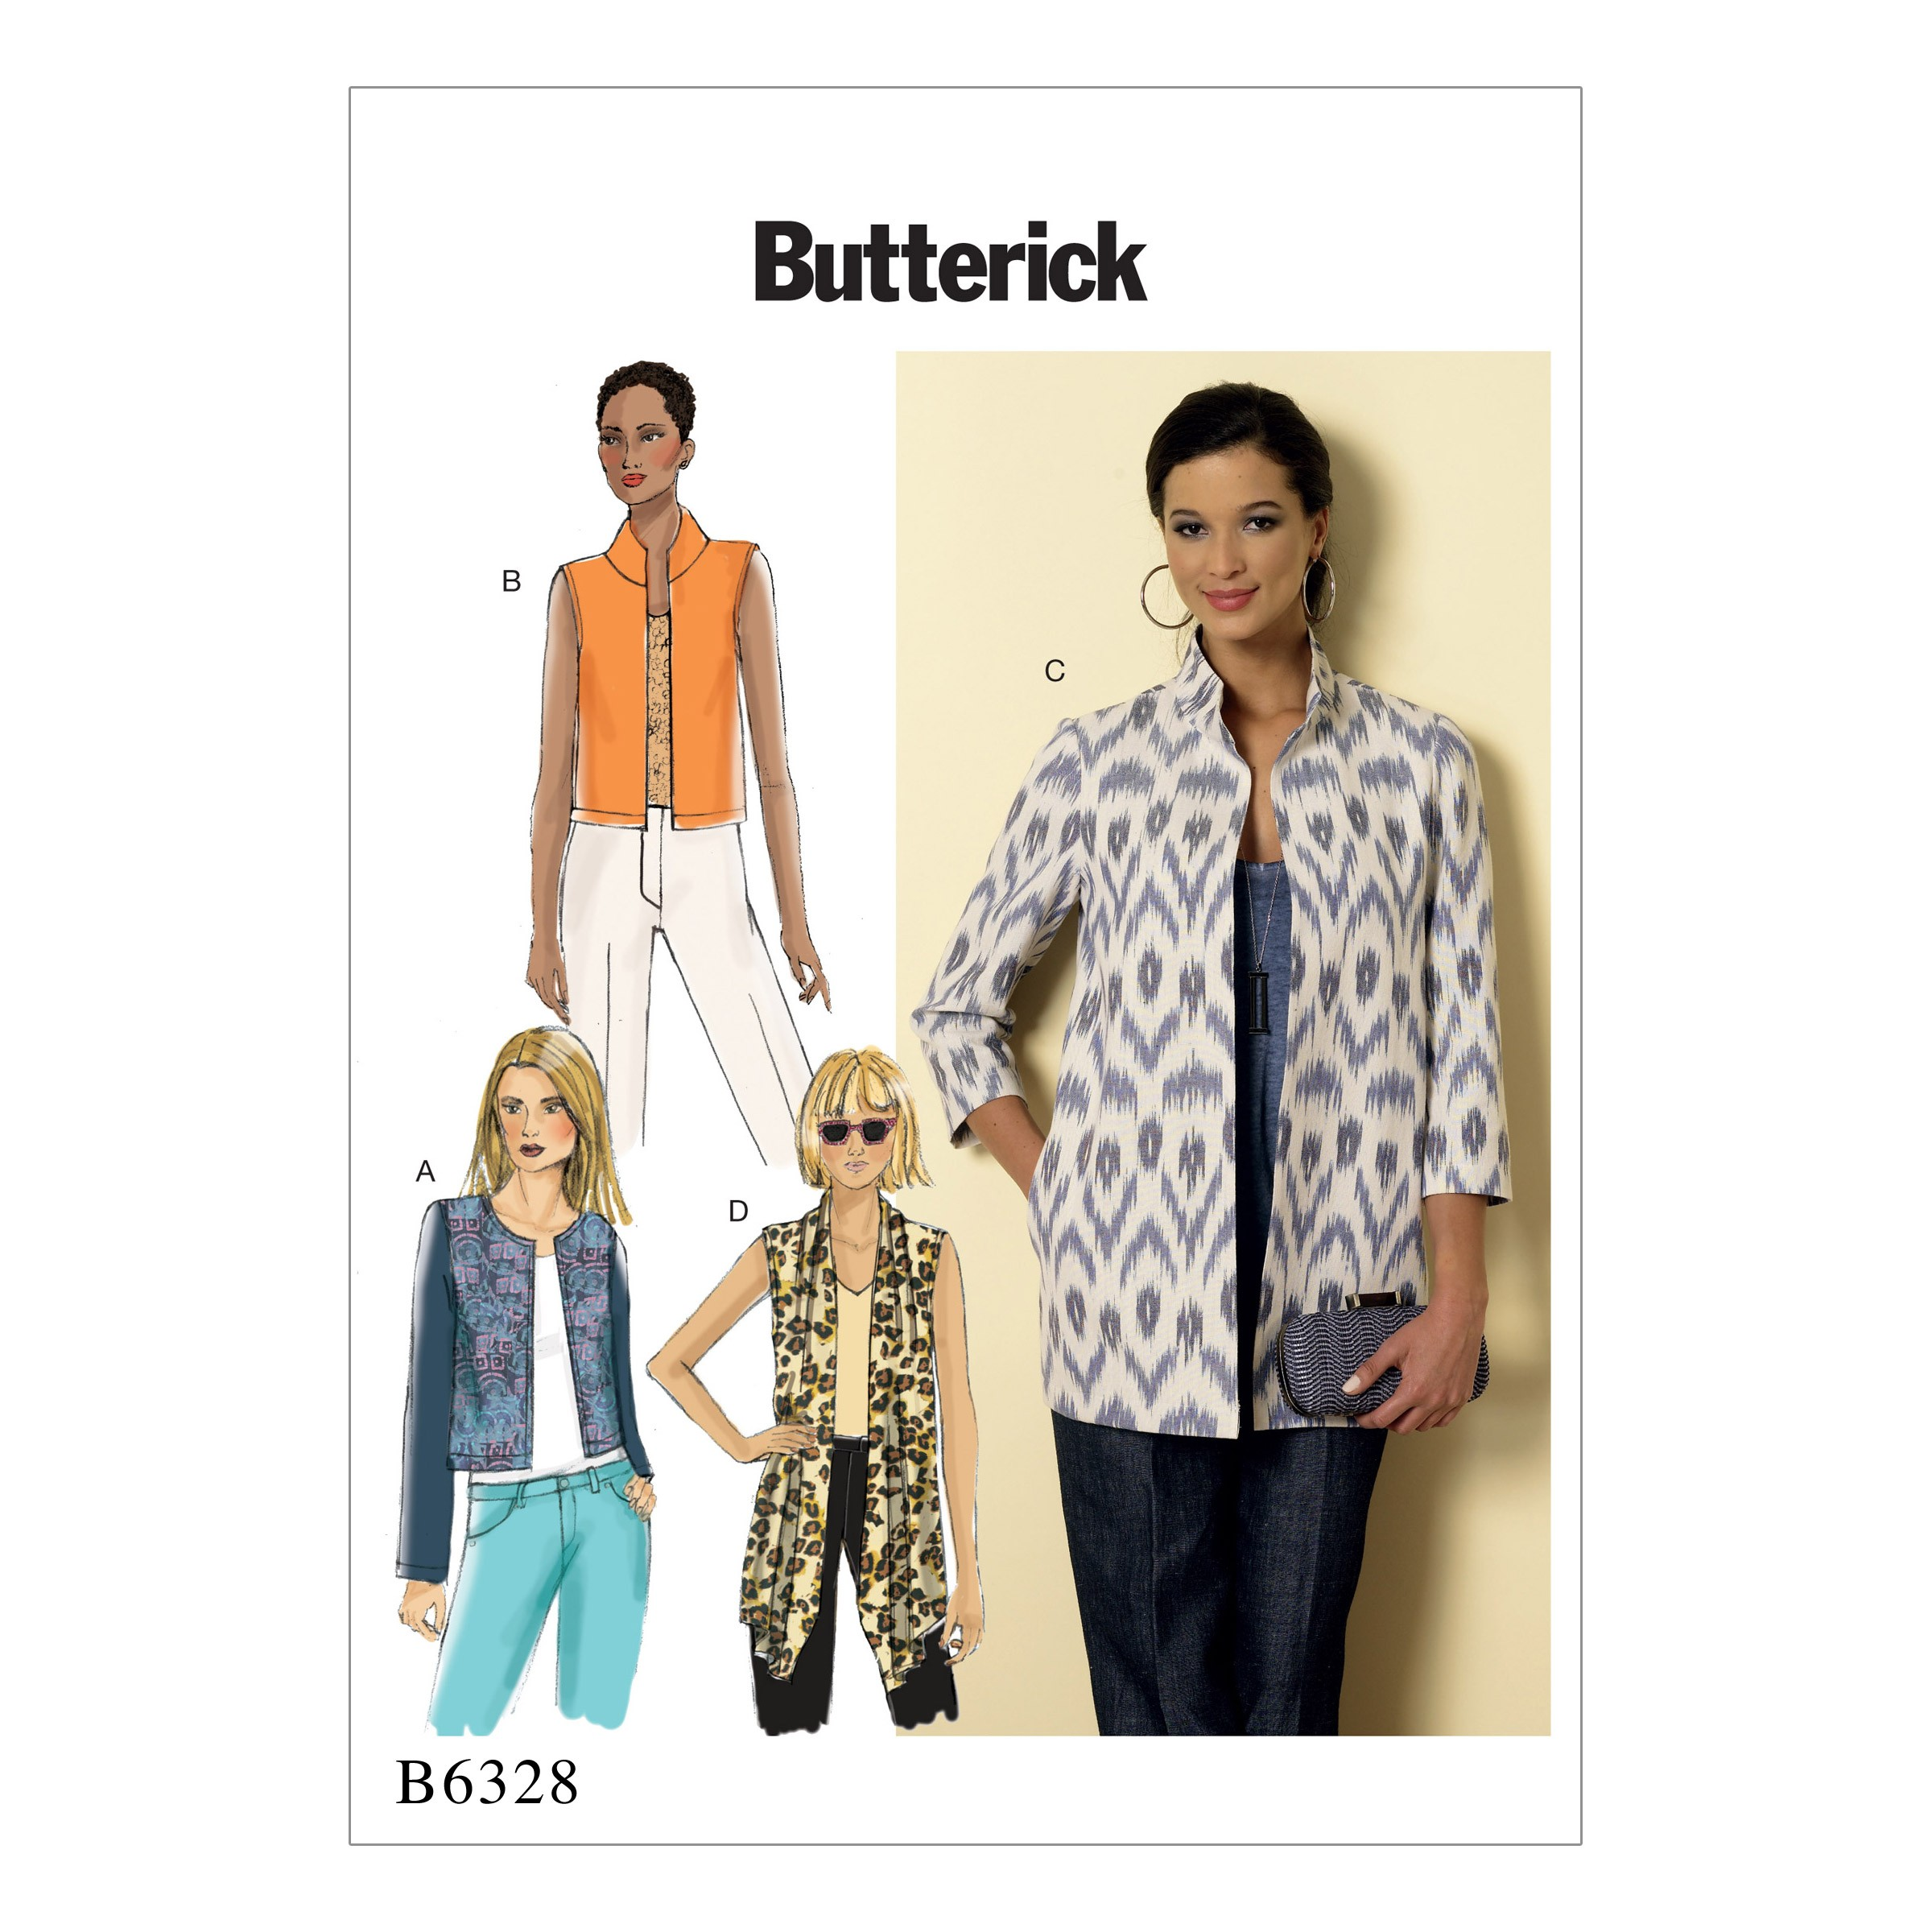 Butterick Sewing Pattern 6328 Misses' Open Front Jacket Coat